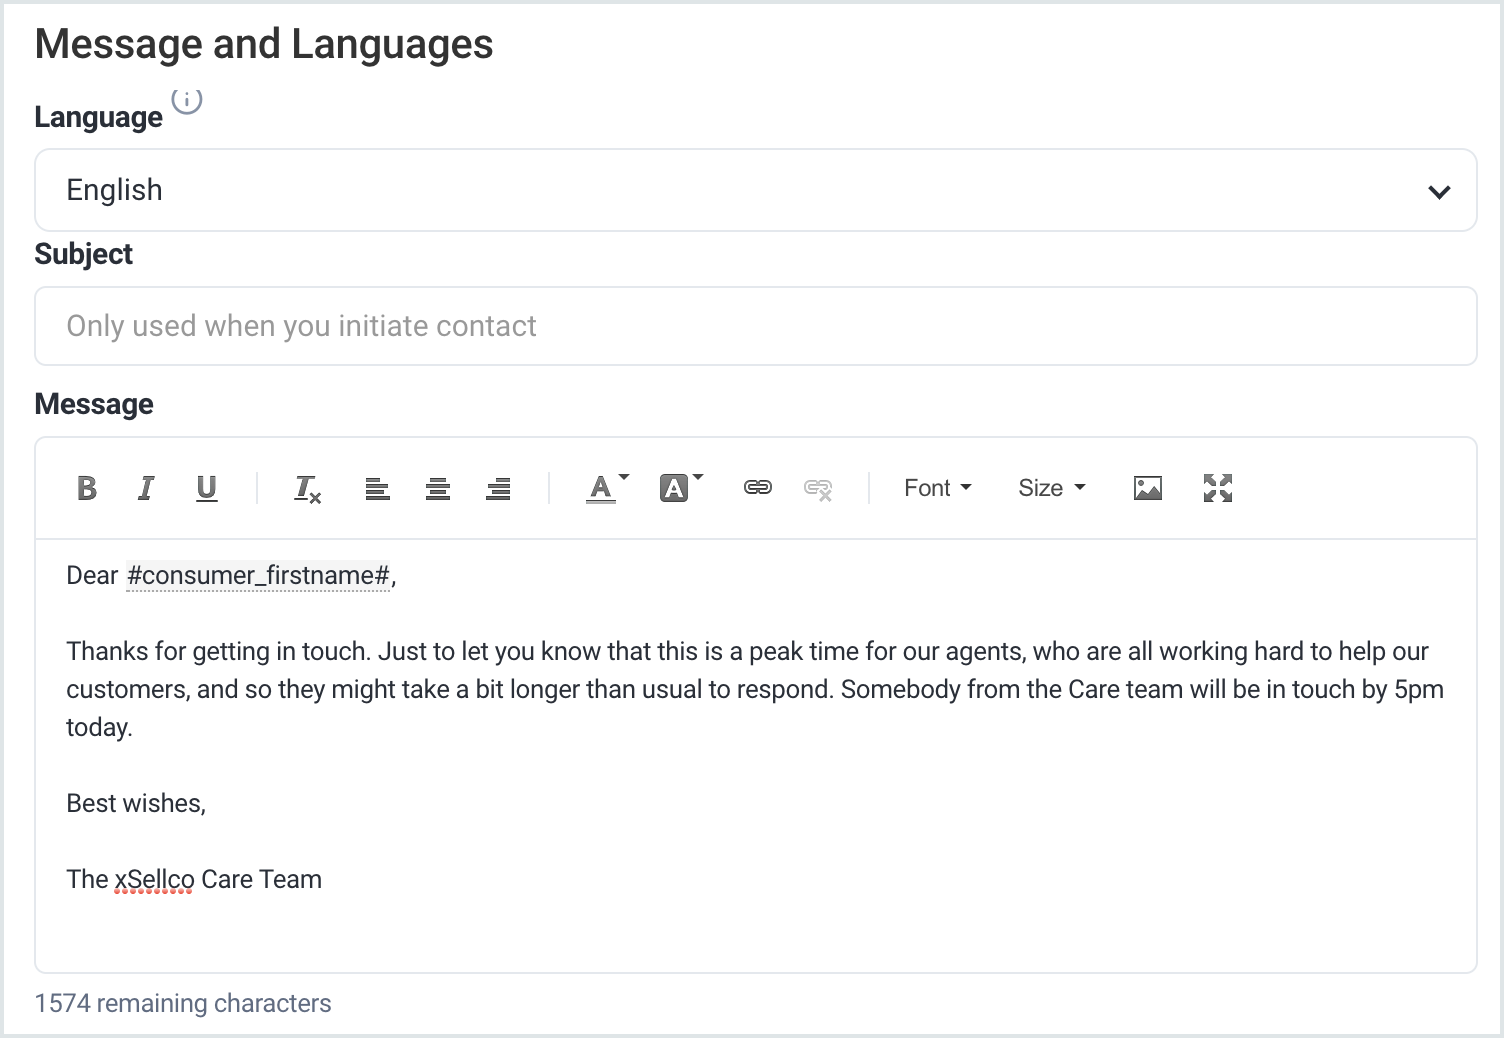 Message and Language fields